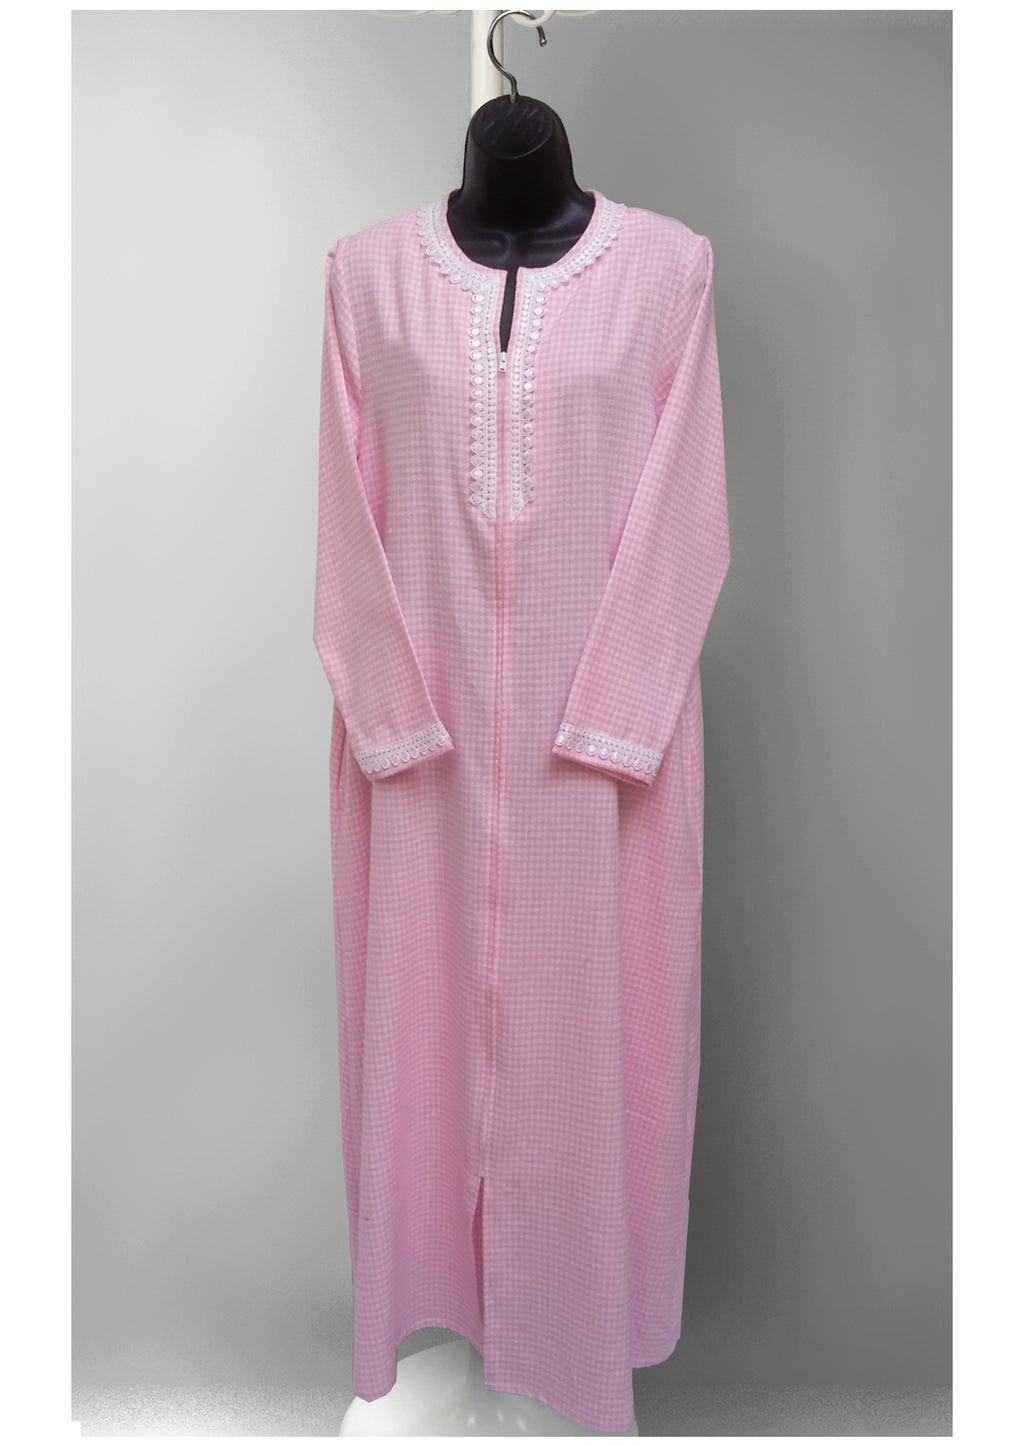 39908 Flannel printed Caftan Robe-final sale-no returns